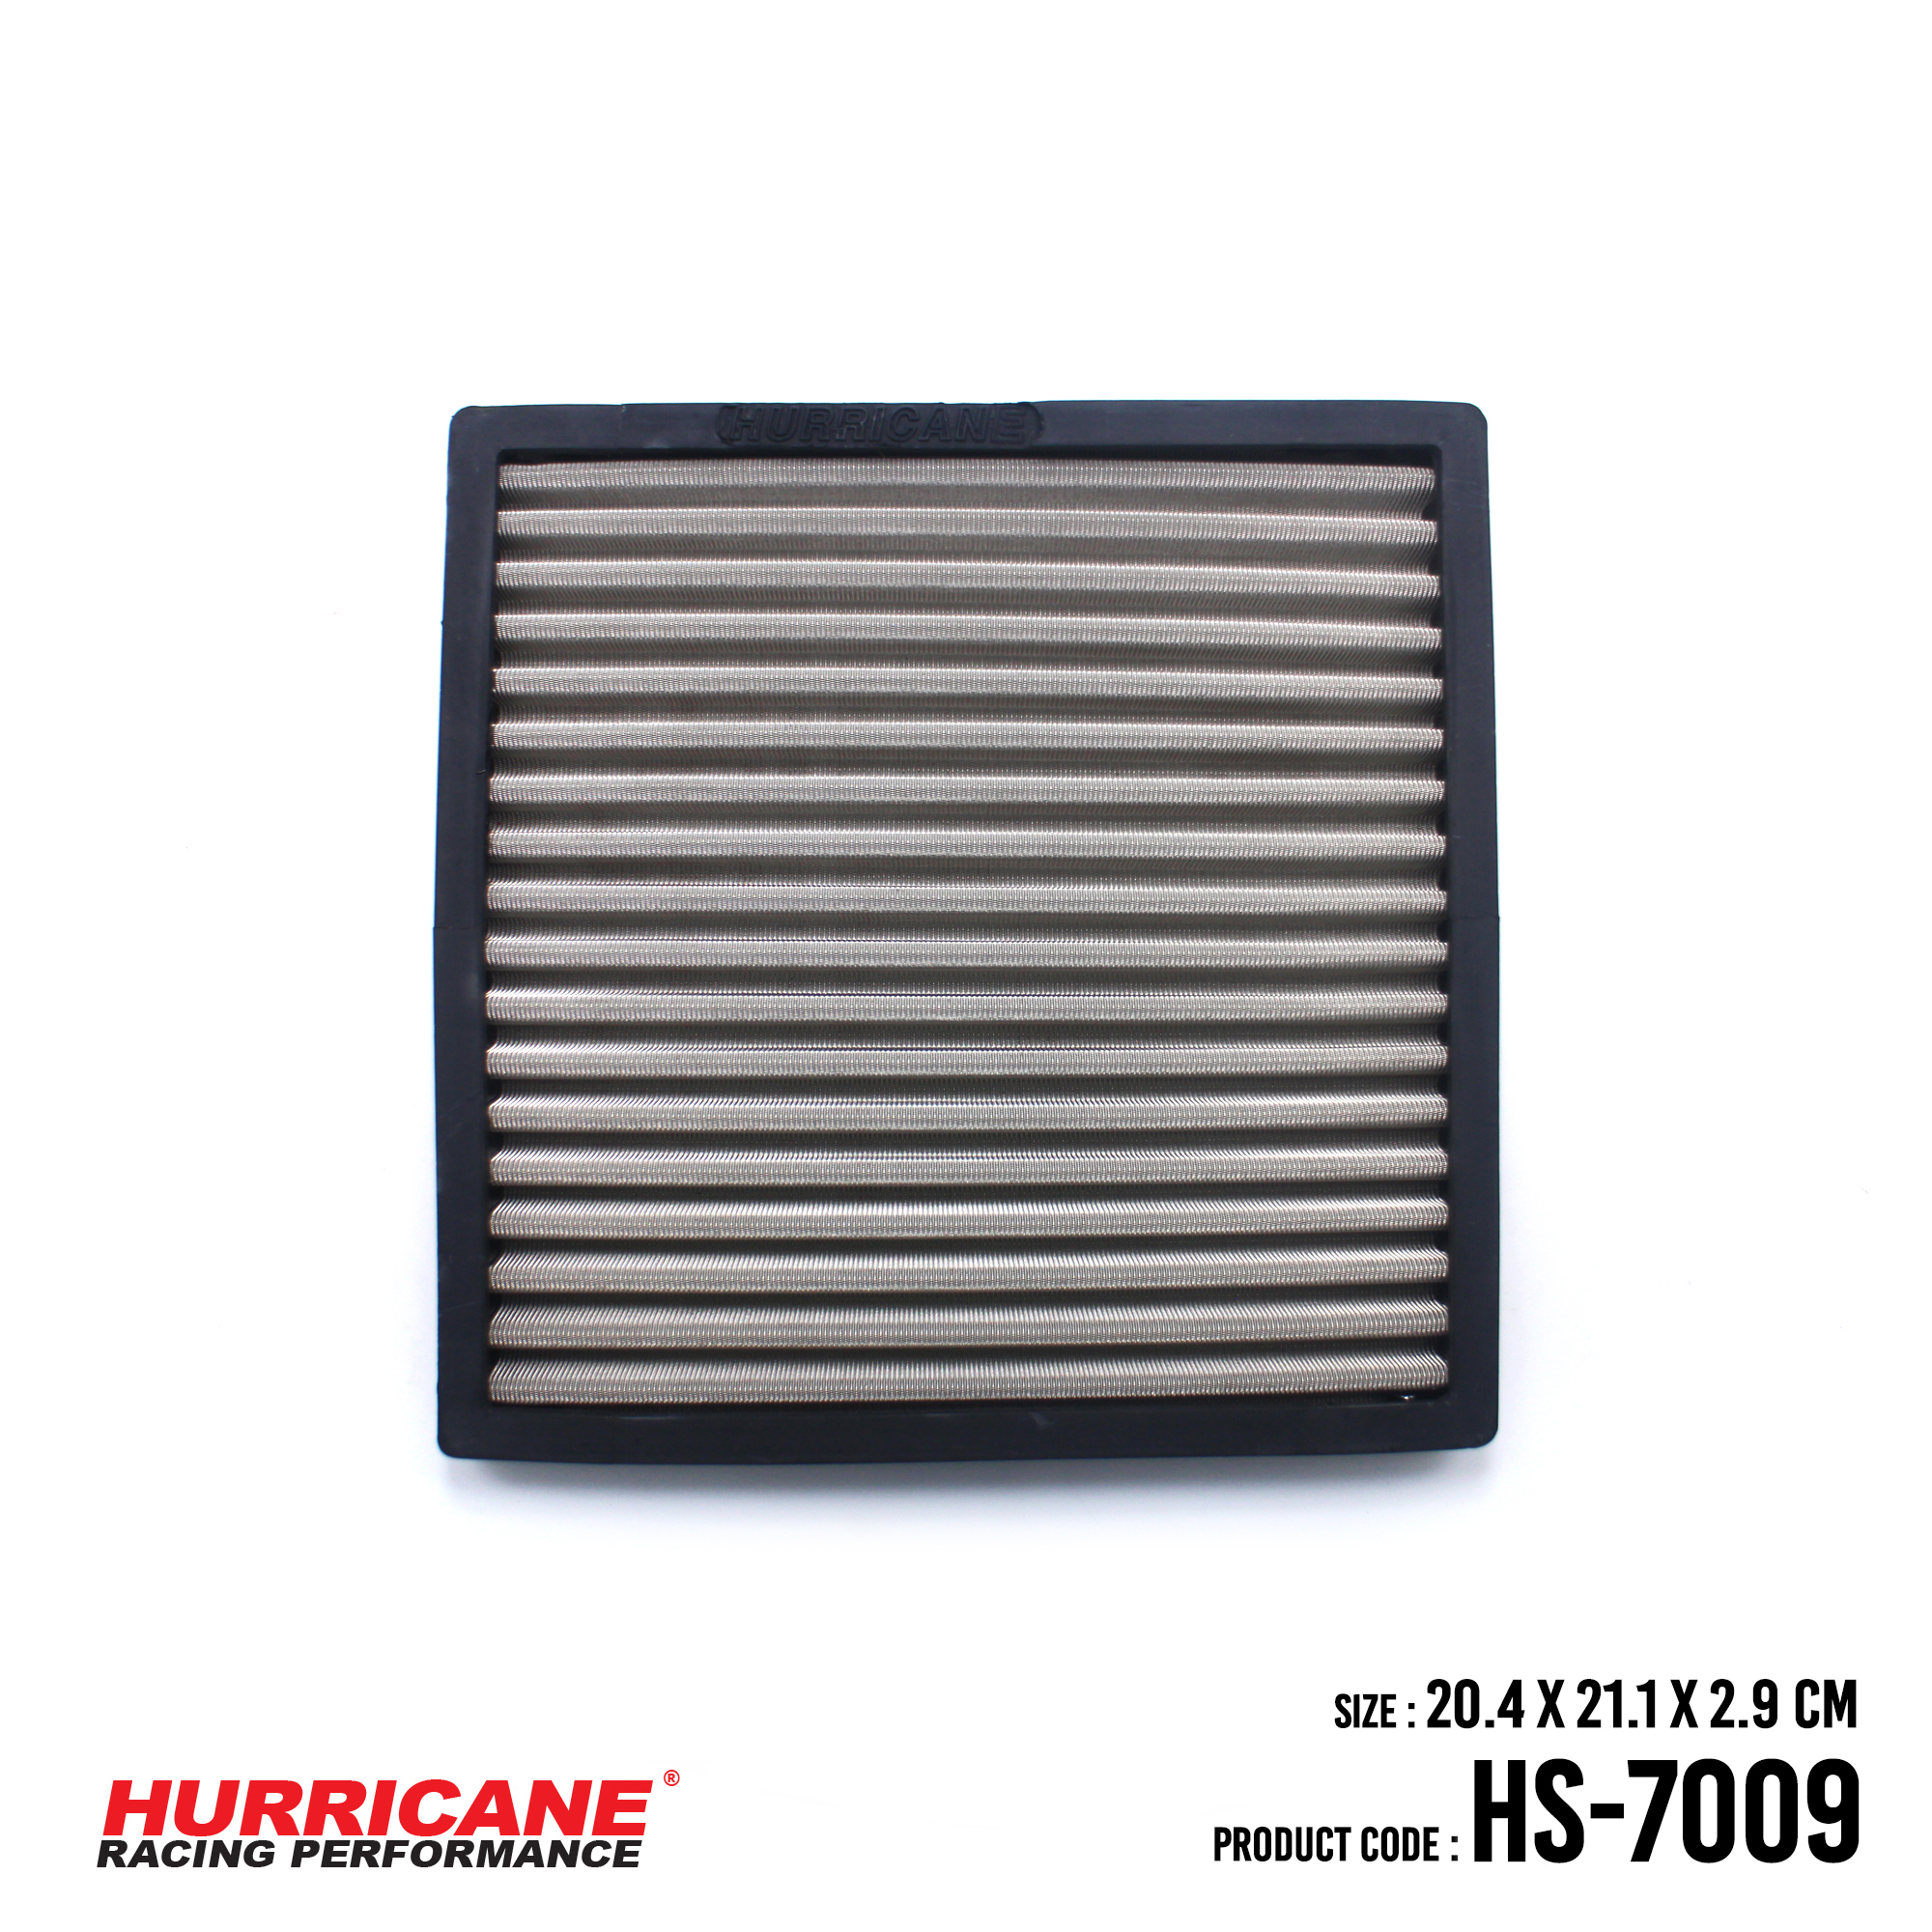 HURRICANE STAINLESS STEEL CABIN AIR FILTER FOR HS-7009 Mitsubishi